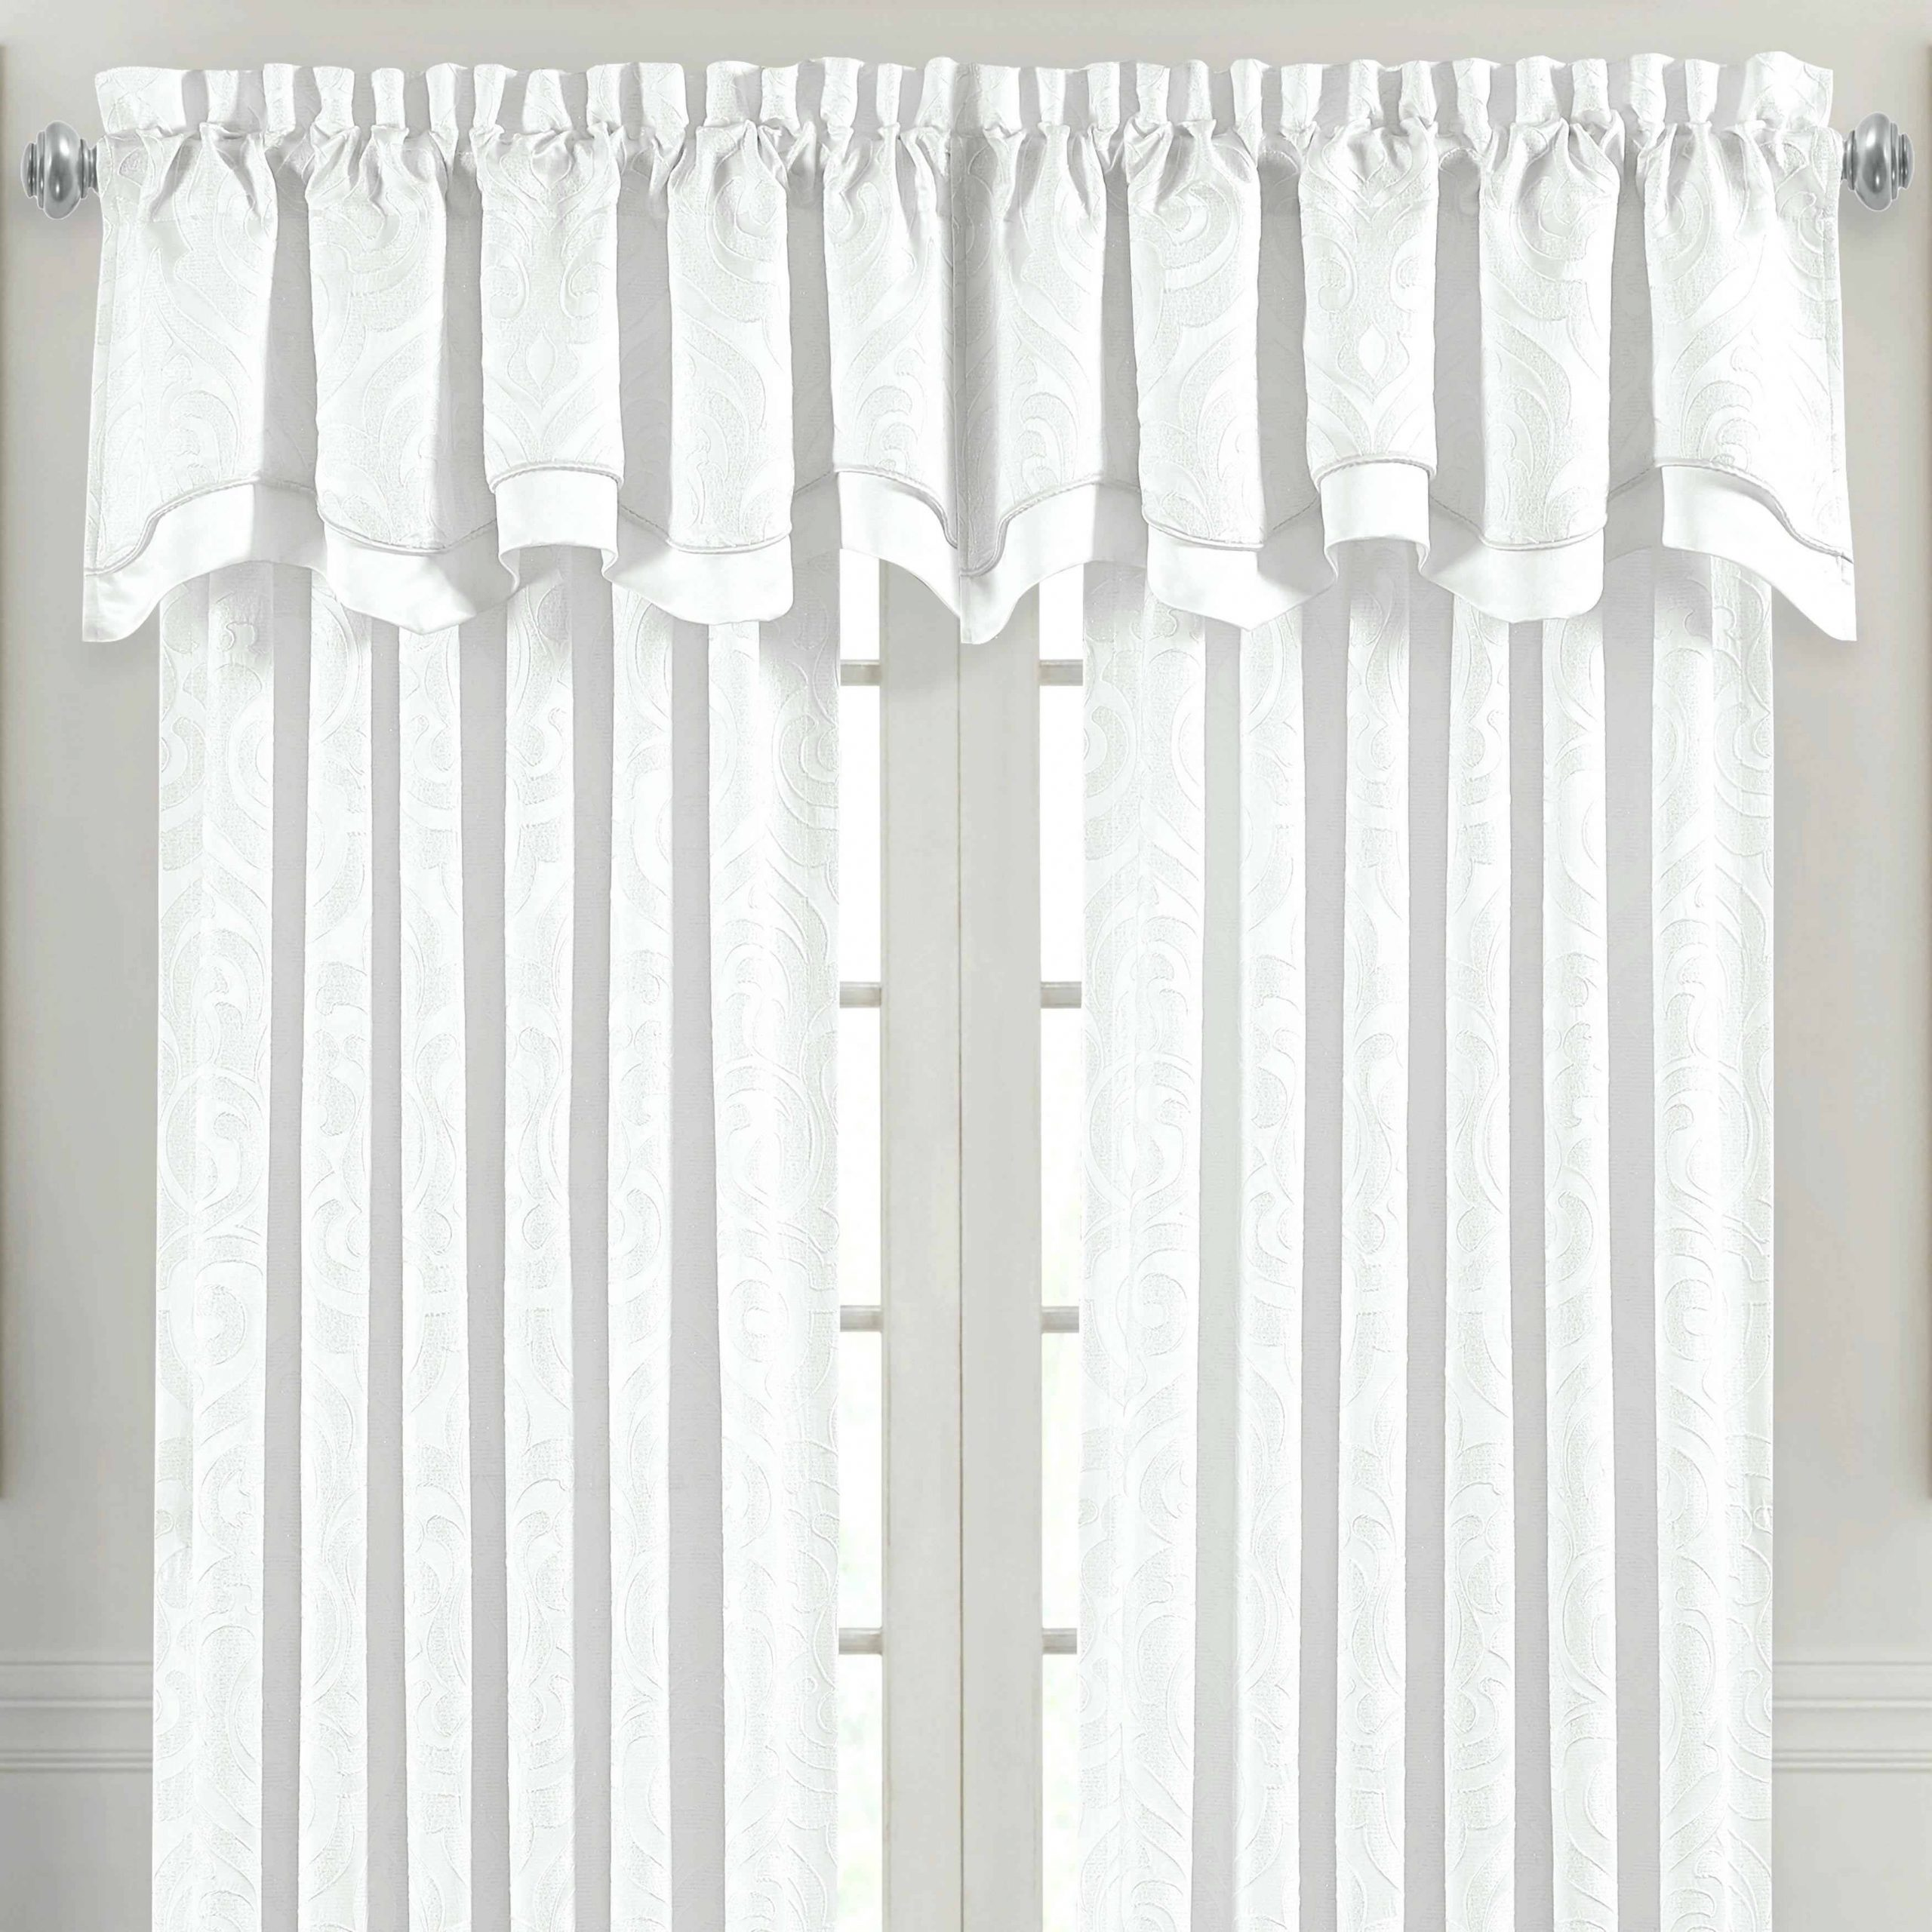 Excellent Kitchen Valance Red Curtains Make Burlap For For Embroidered Ladybugs Window Curtain Pieces (View 16 of 20)